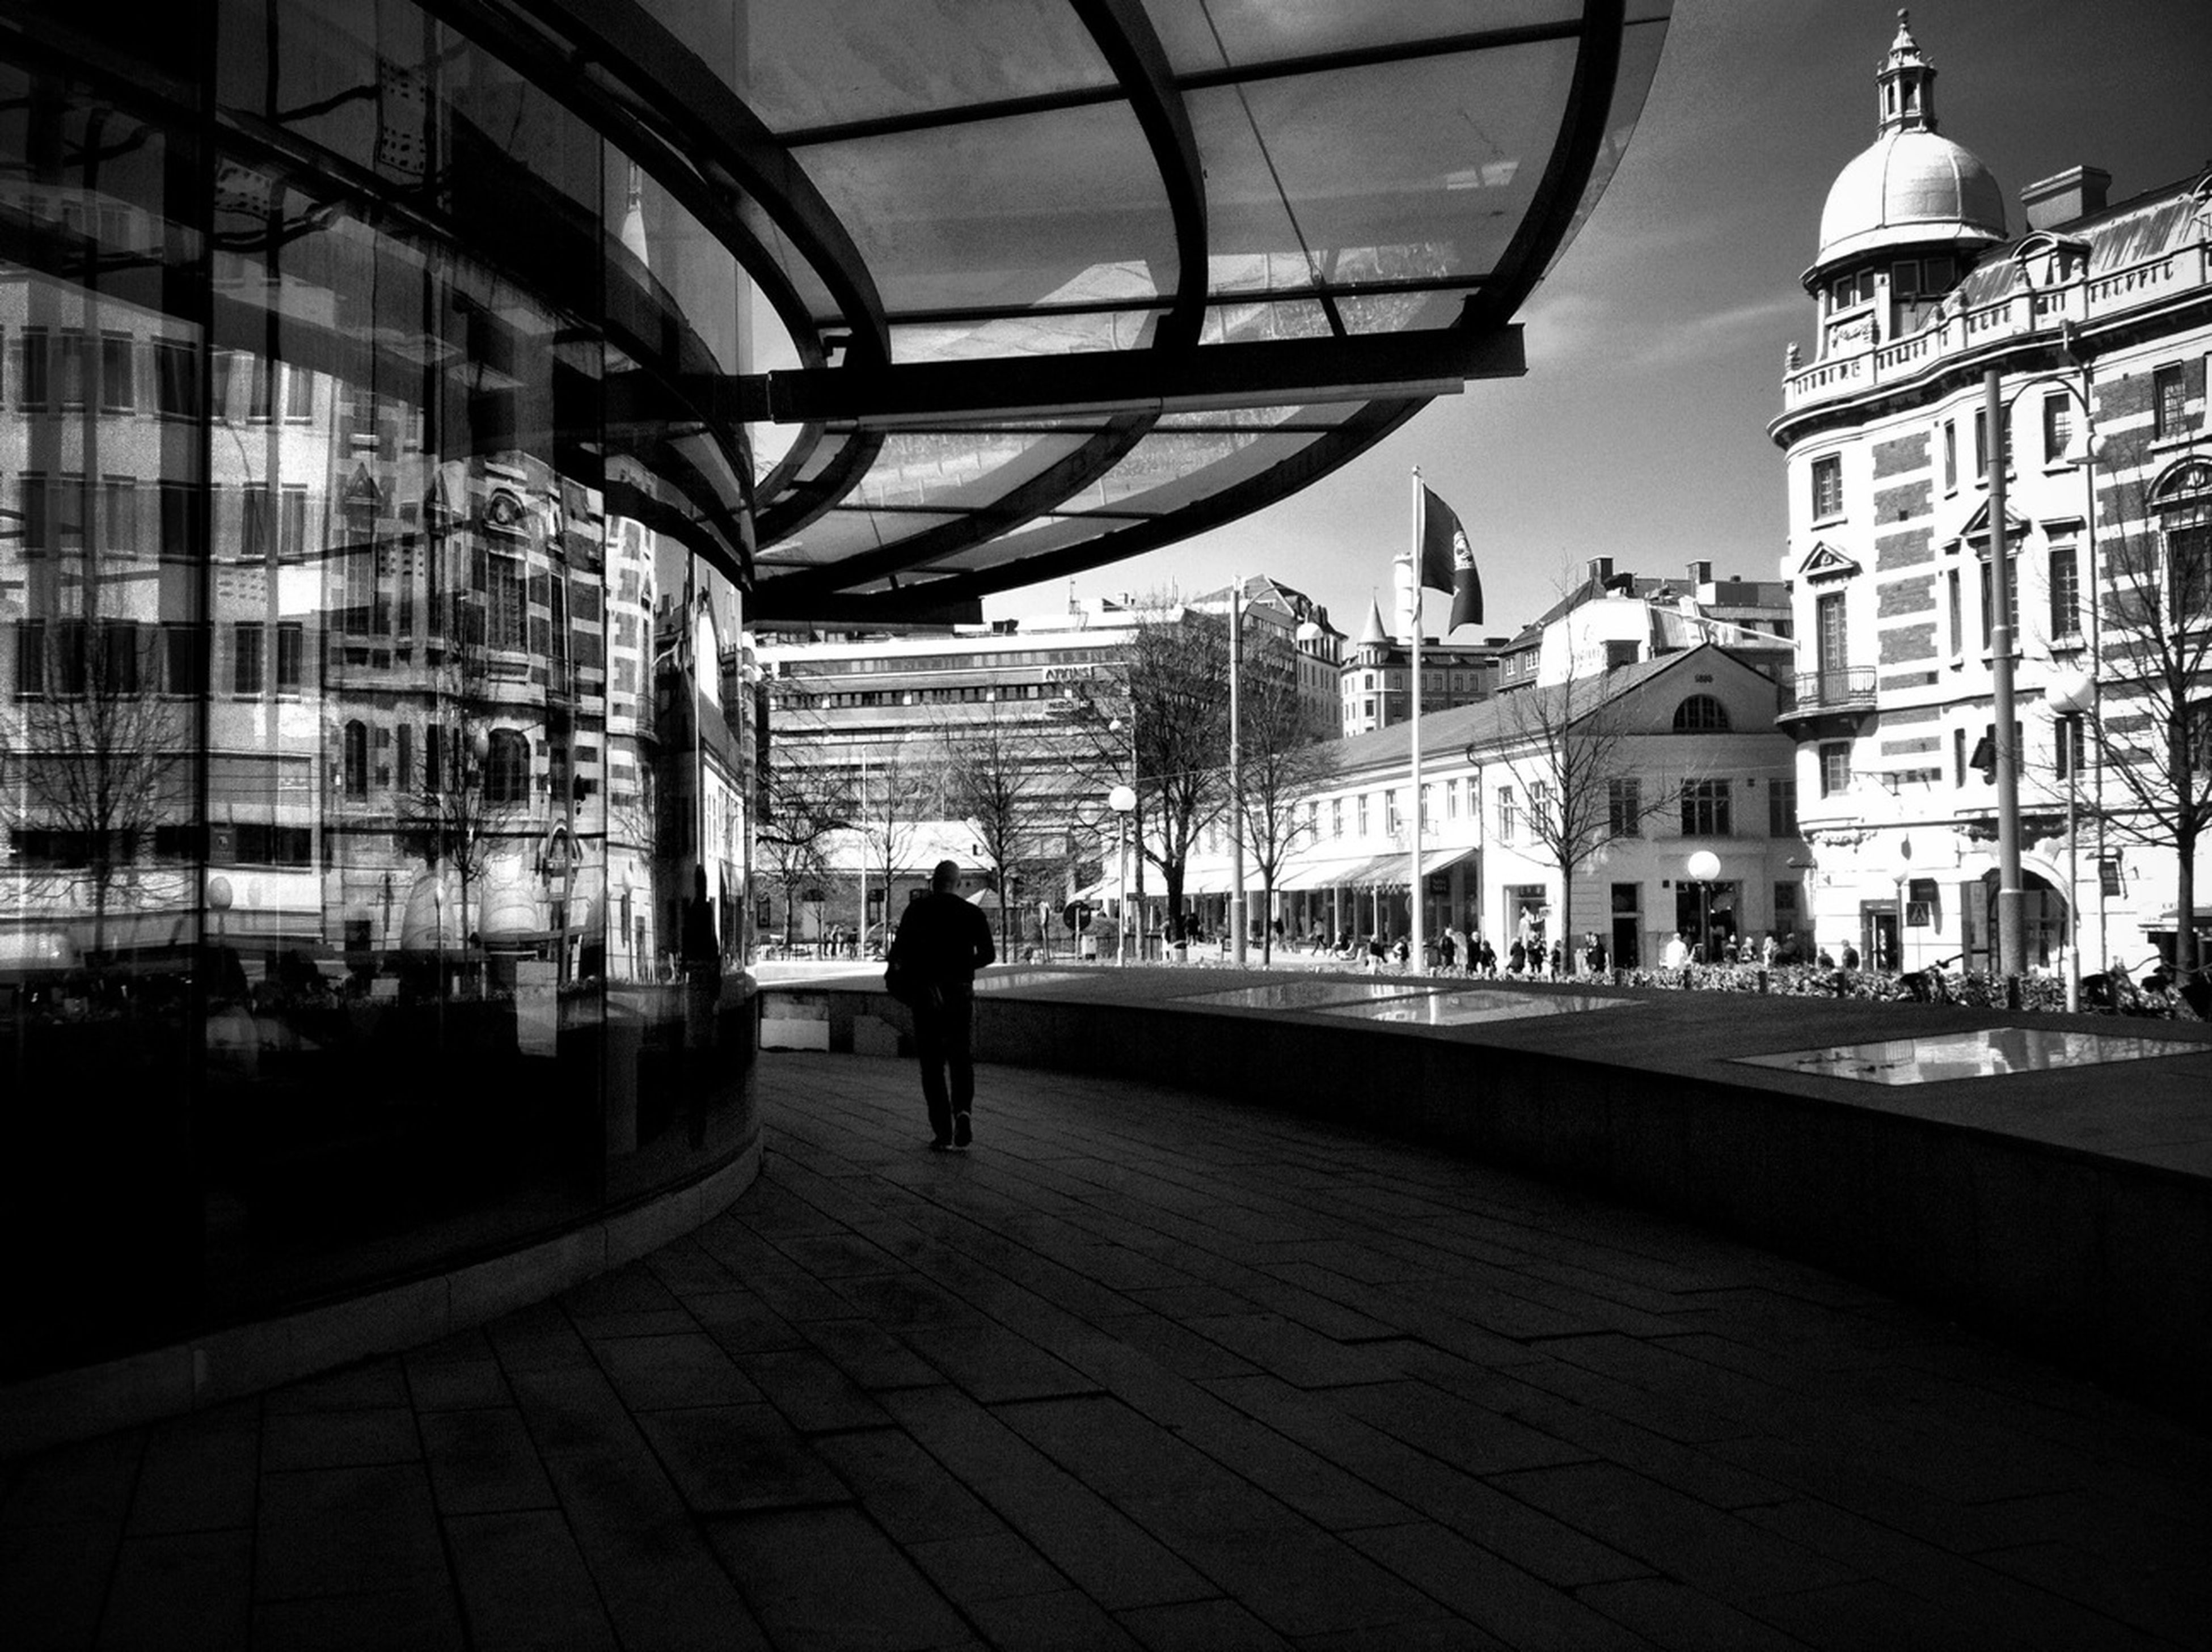 architecture, building exterior, built structure, walking, city, full length, men, rear view, lifestyles, street, city life, person, cobblestone, building, the way forward, incidental people, transportation, day